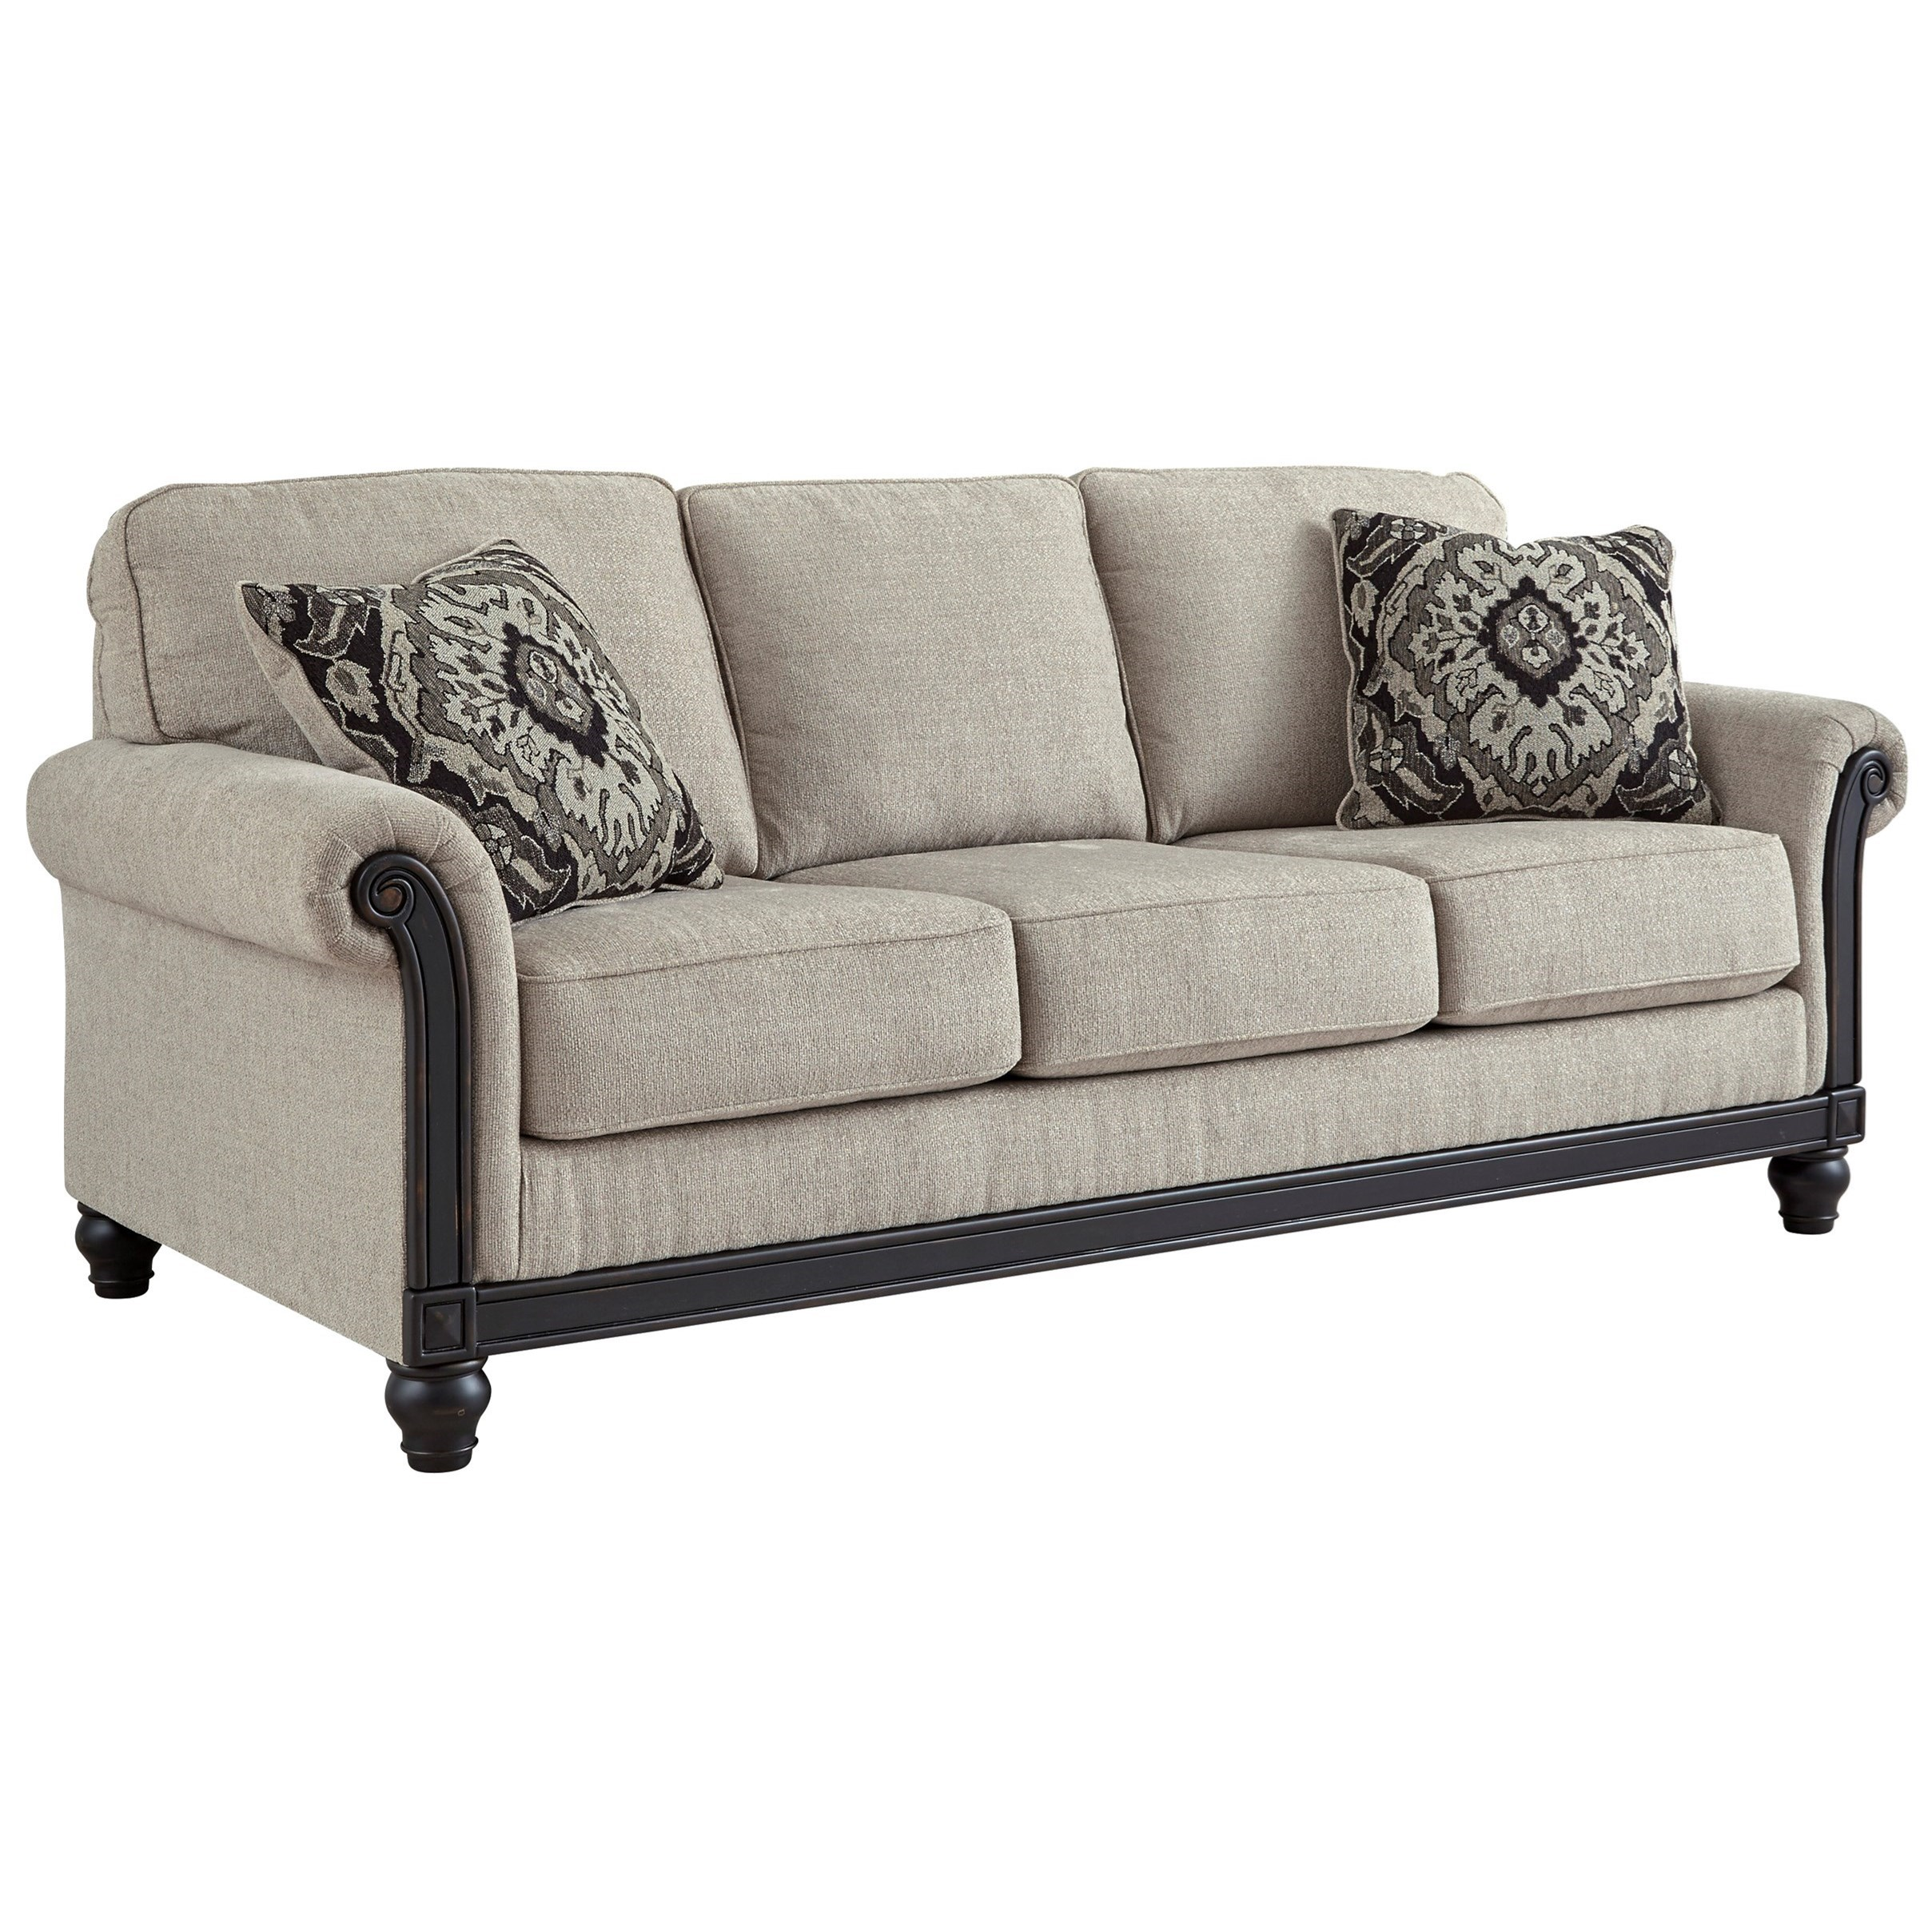 Benbrook Sofa by Signature Design by Ashley at Northeast Factory Direct